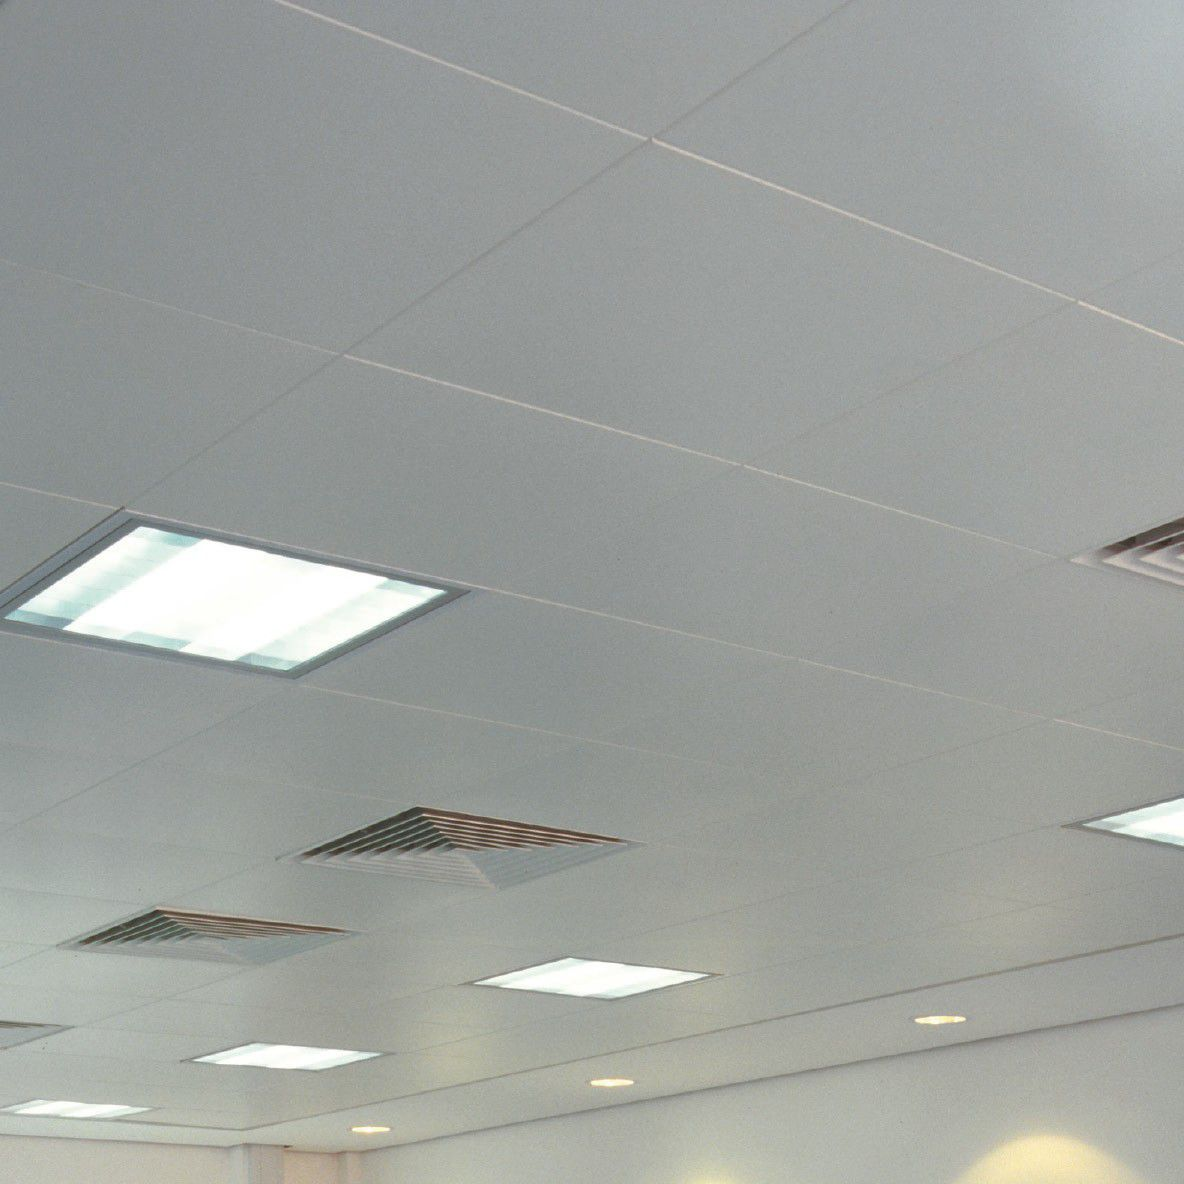 Suspended ceiling tiles perforated ceiling tiles square edge tiles metal ceiling tiles dailygadgetfo Gallery